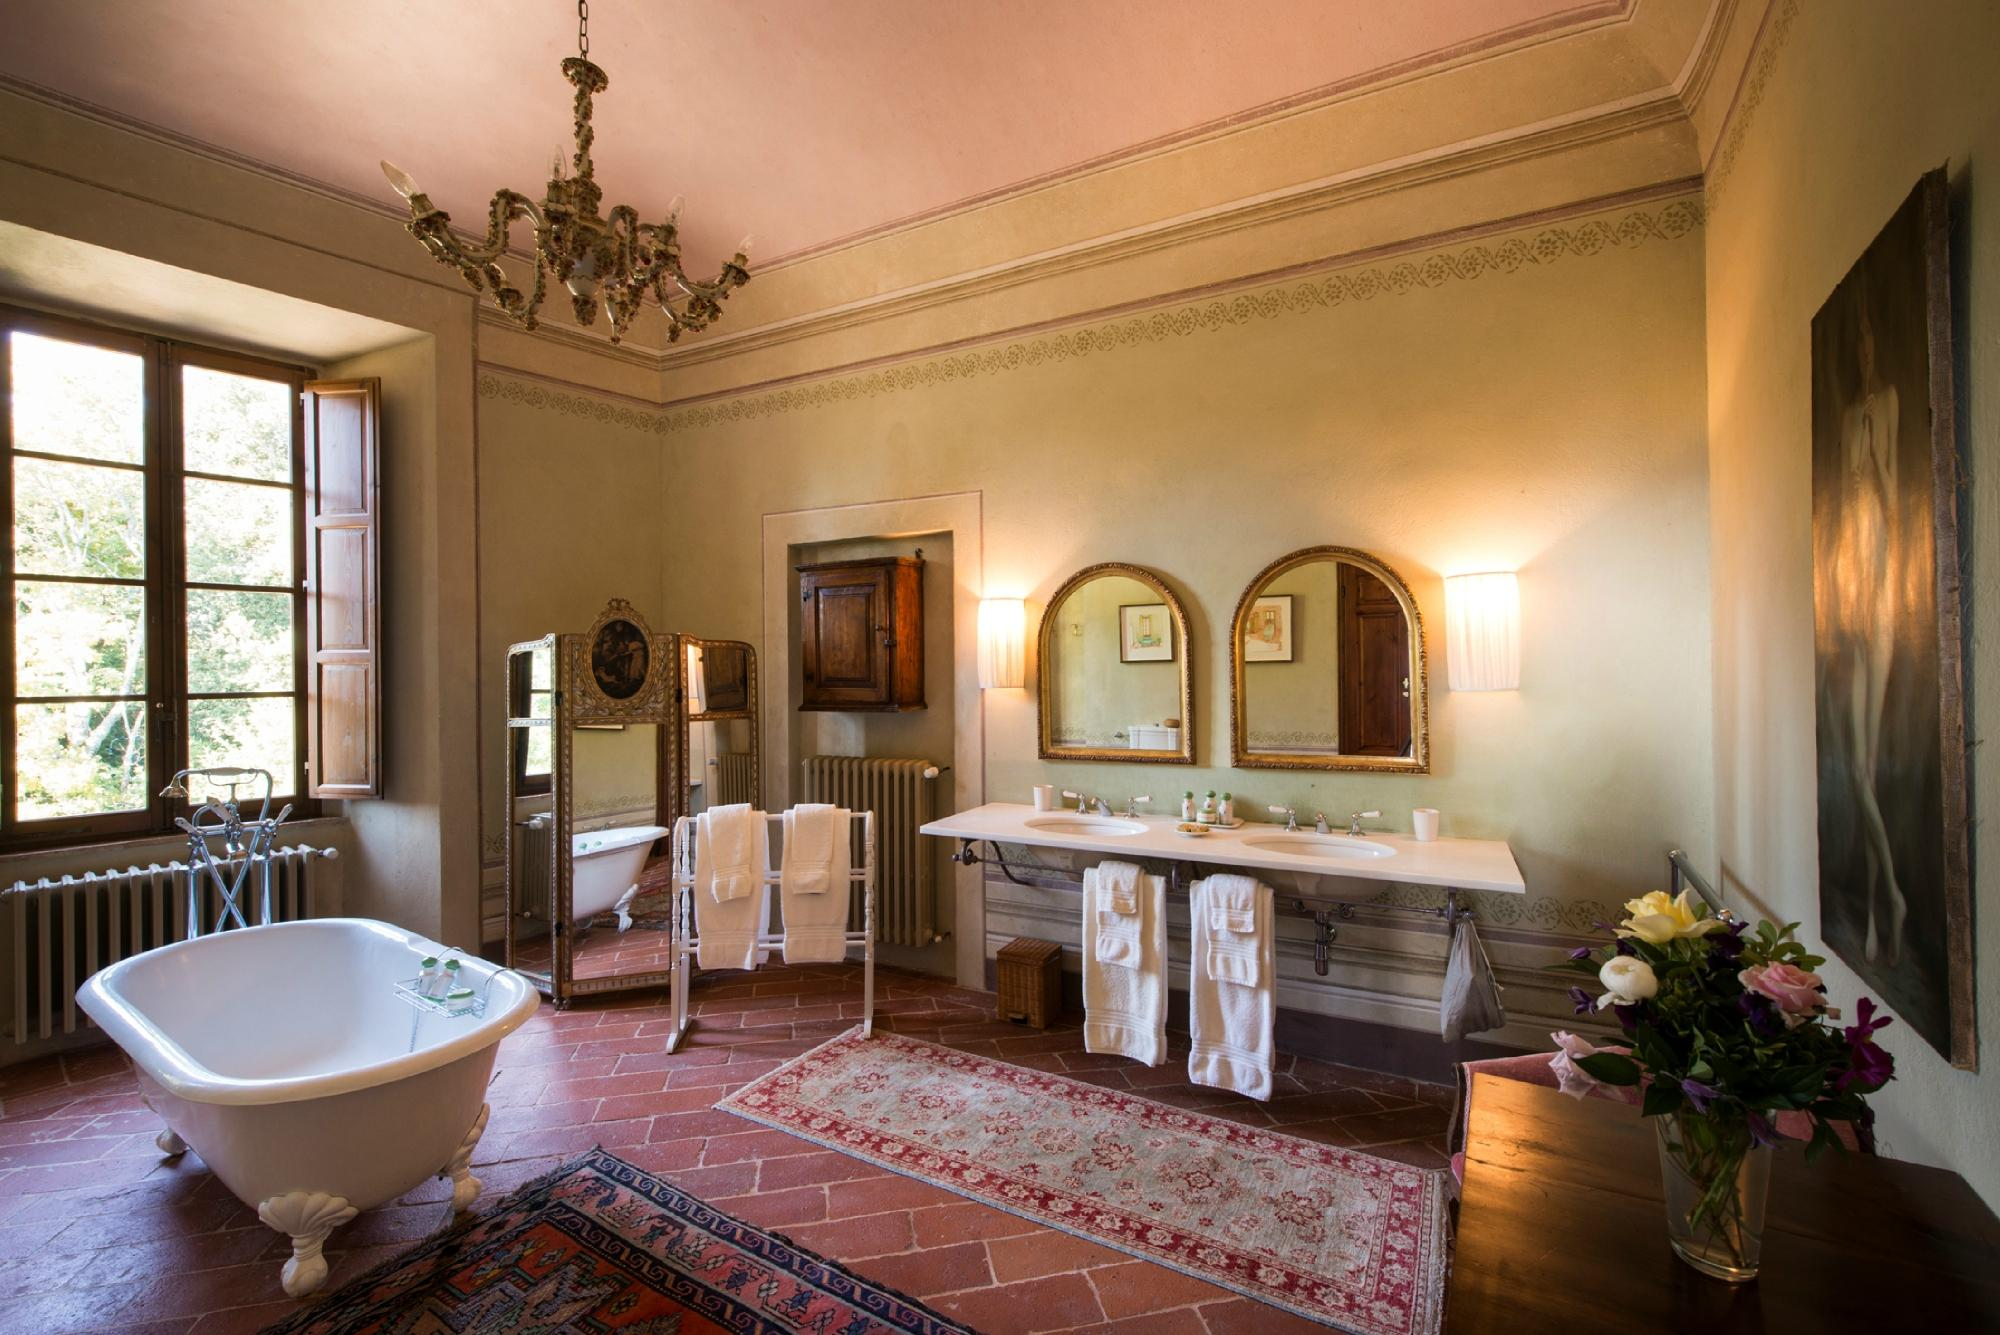 Borgo Pignano Bathroom